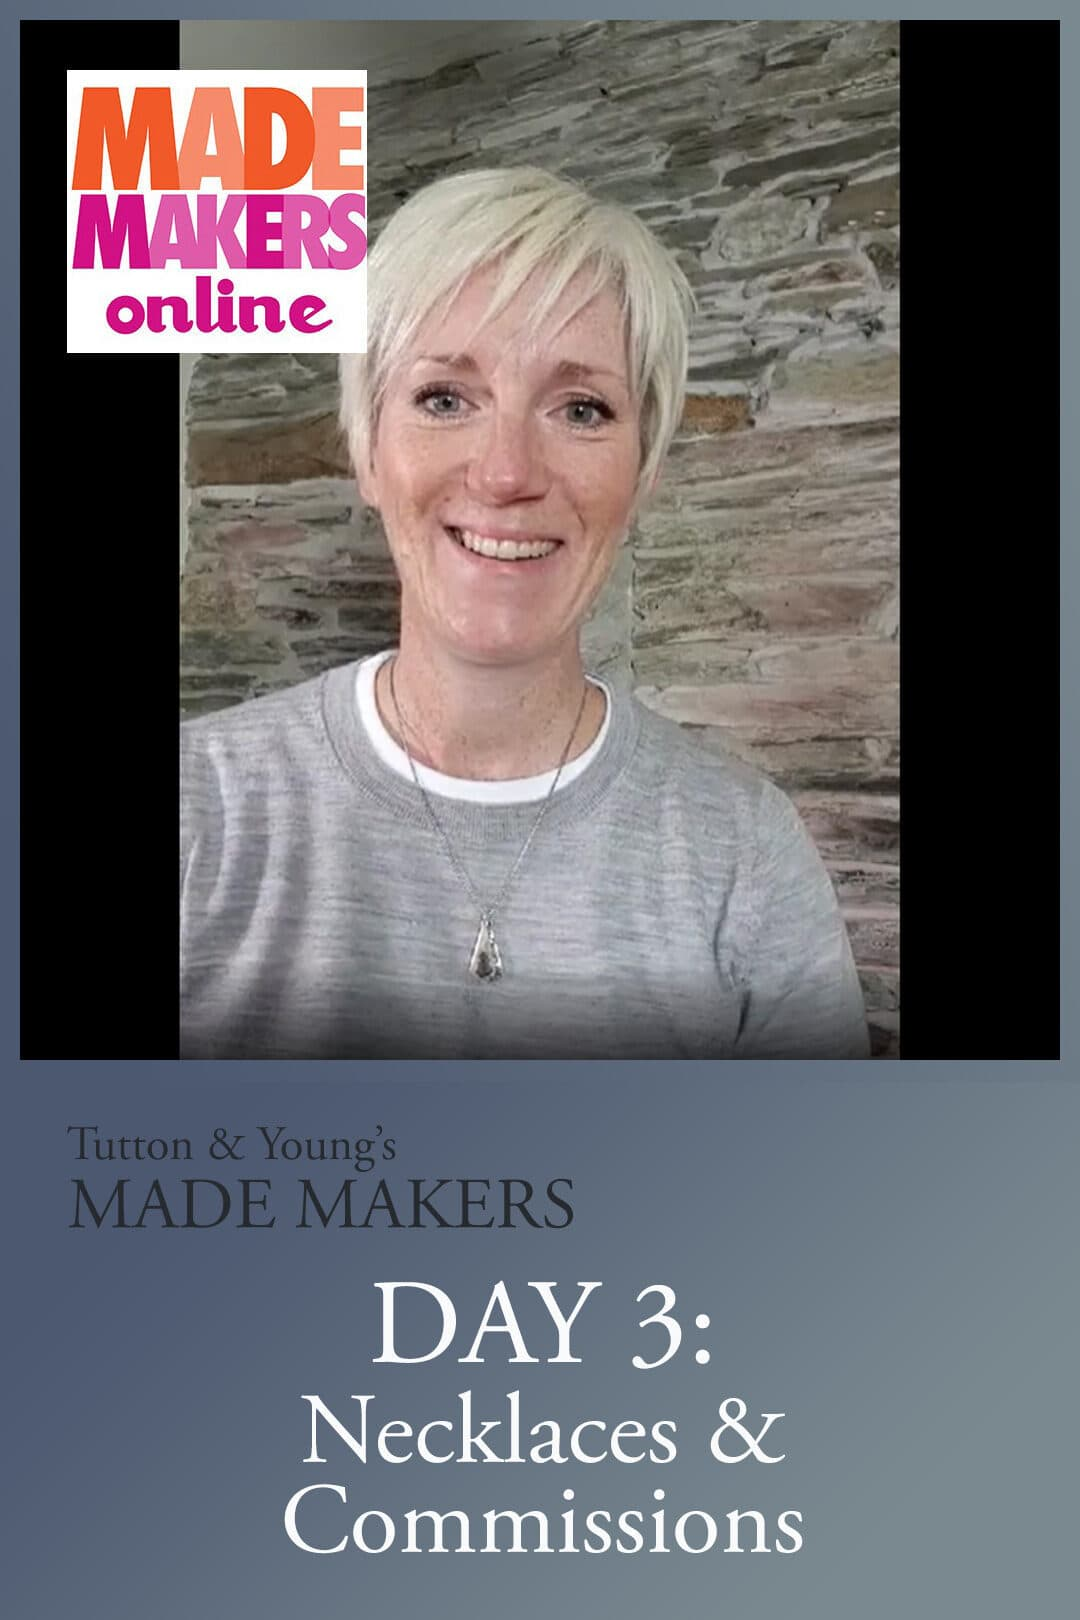 Day 3 of MADE Makers online November 2020